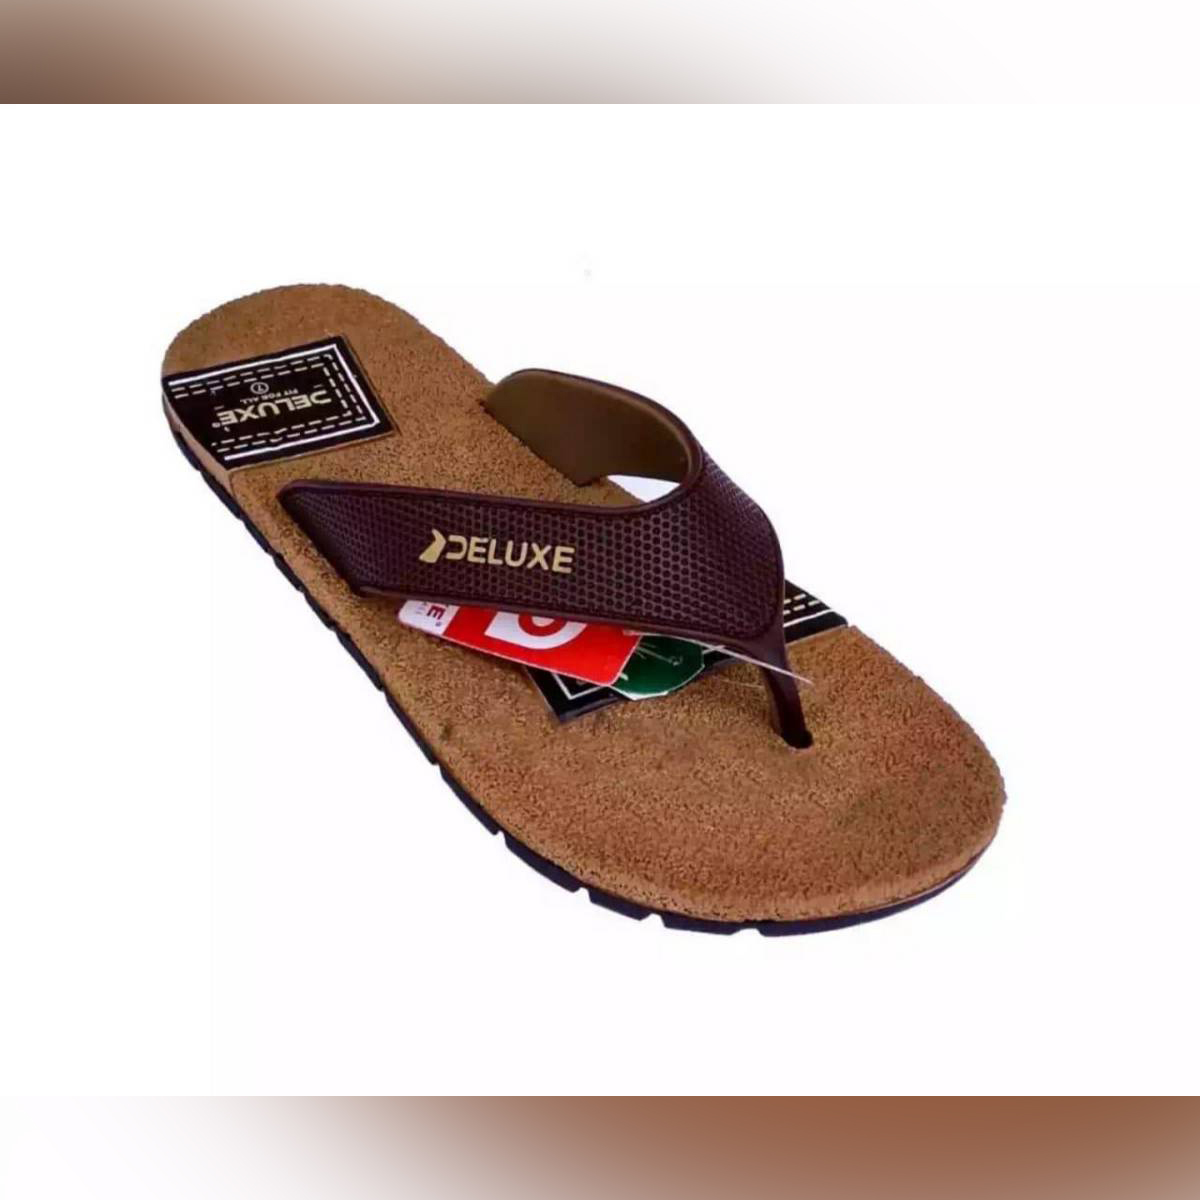 DELUXE CASUAL BROWN CHAPPAL FOR MEN WITH LATEST DESIGN